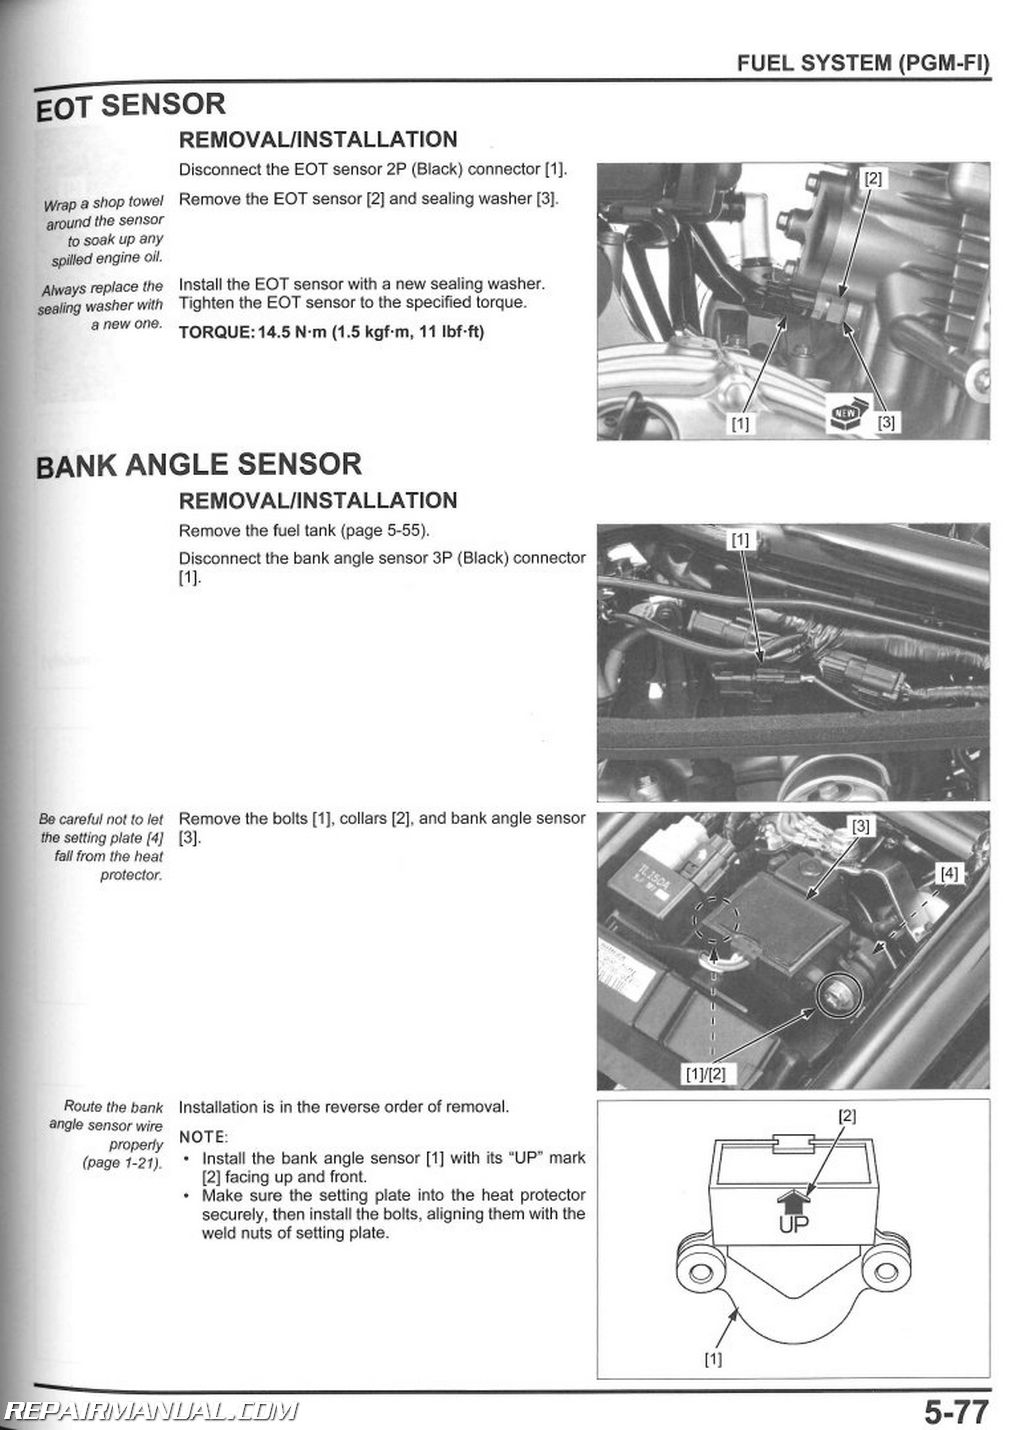 Cb1100 Wiring Diagram Trusted Schematics Honda Bf60 2013 2017 A Motorcycle Service Manual Cmx450